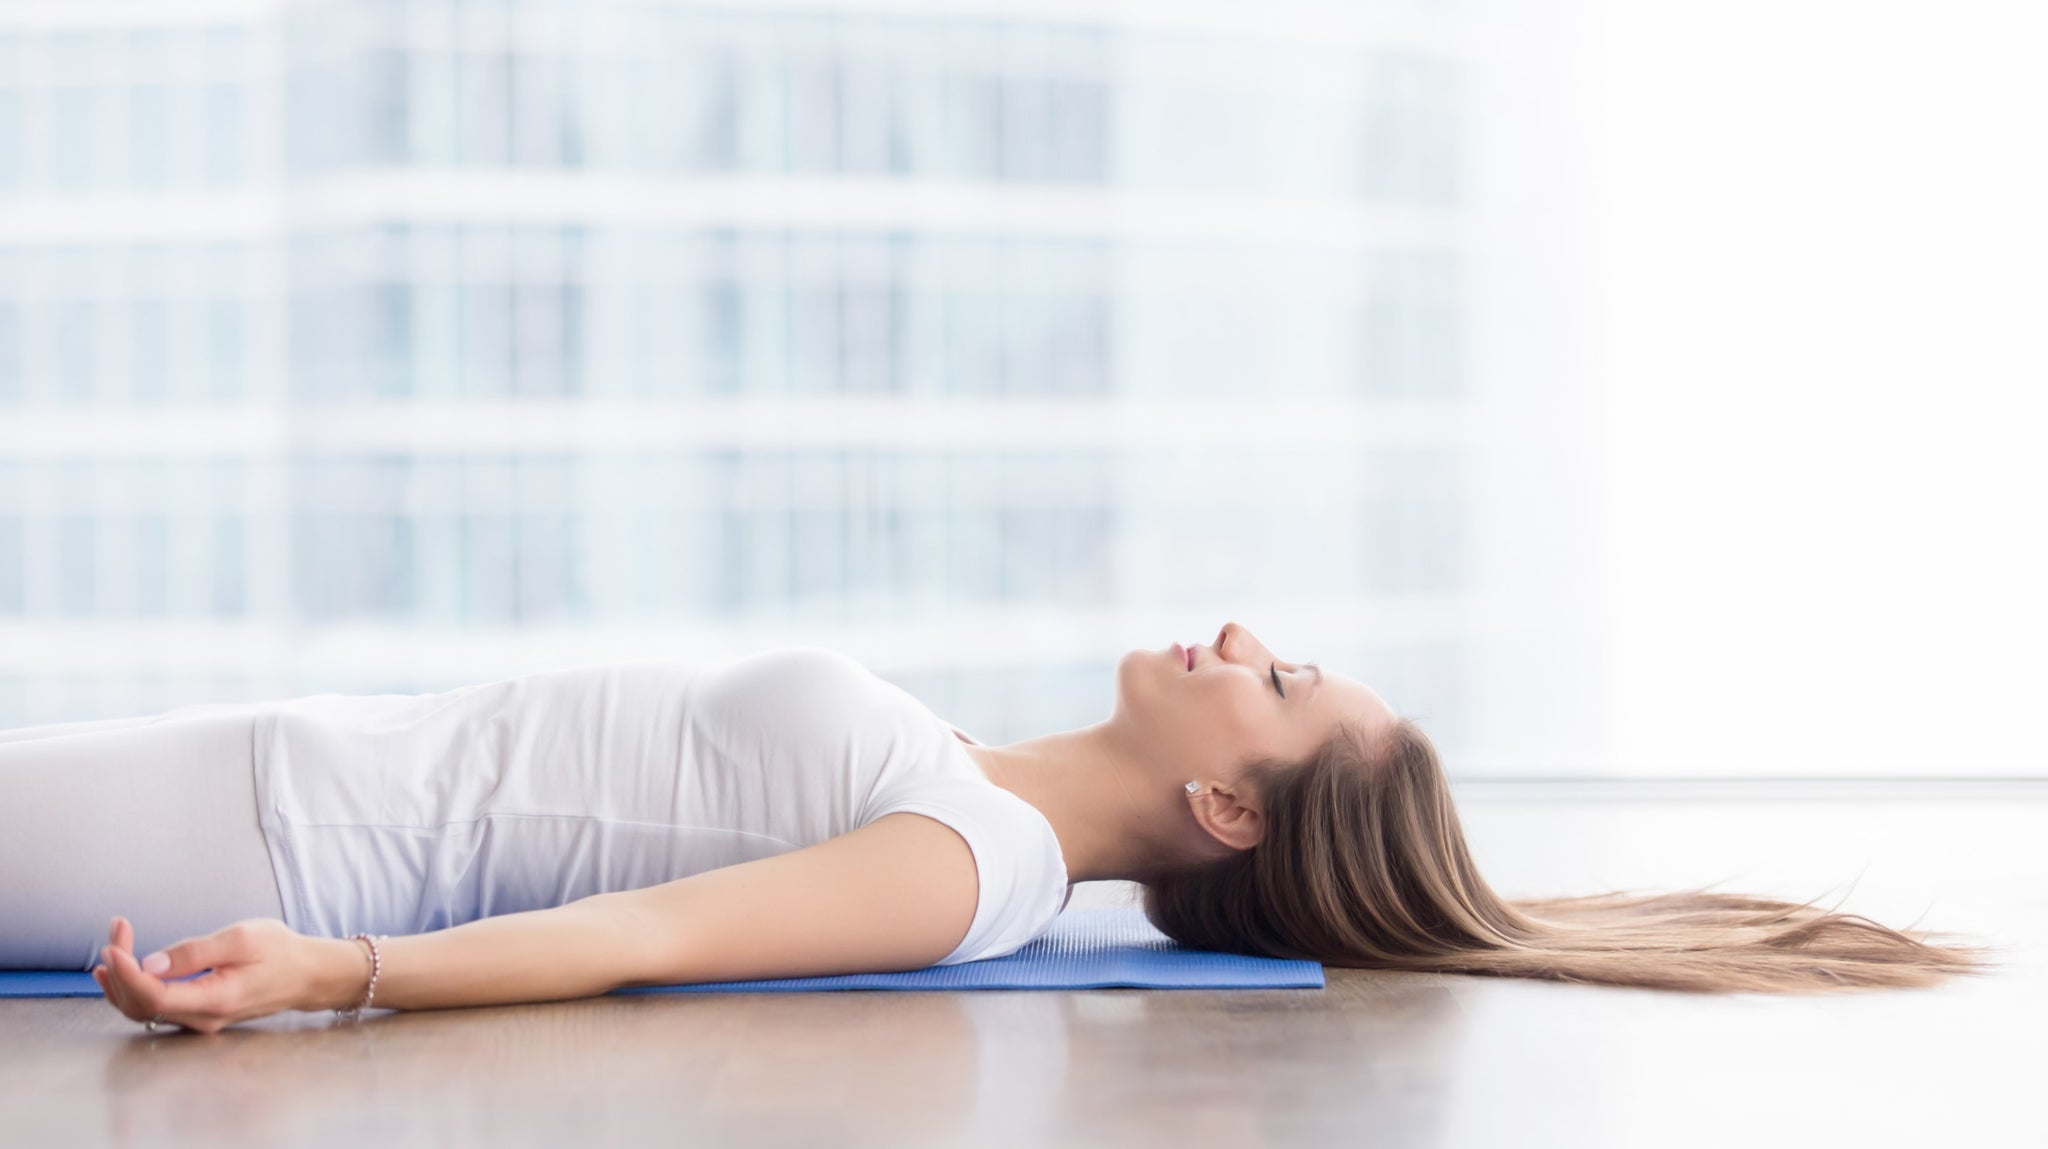 young woman practicing the yoga posture savasana